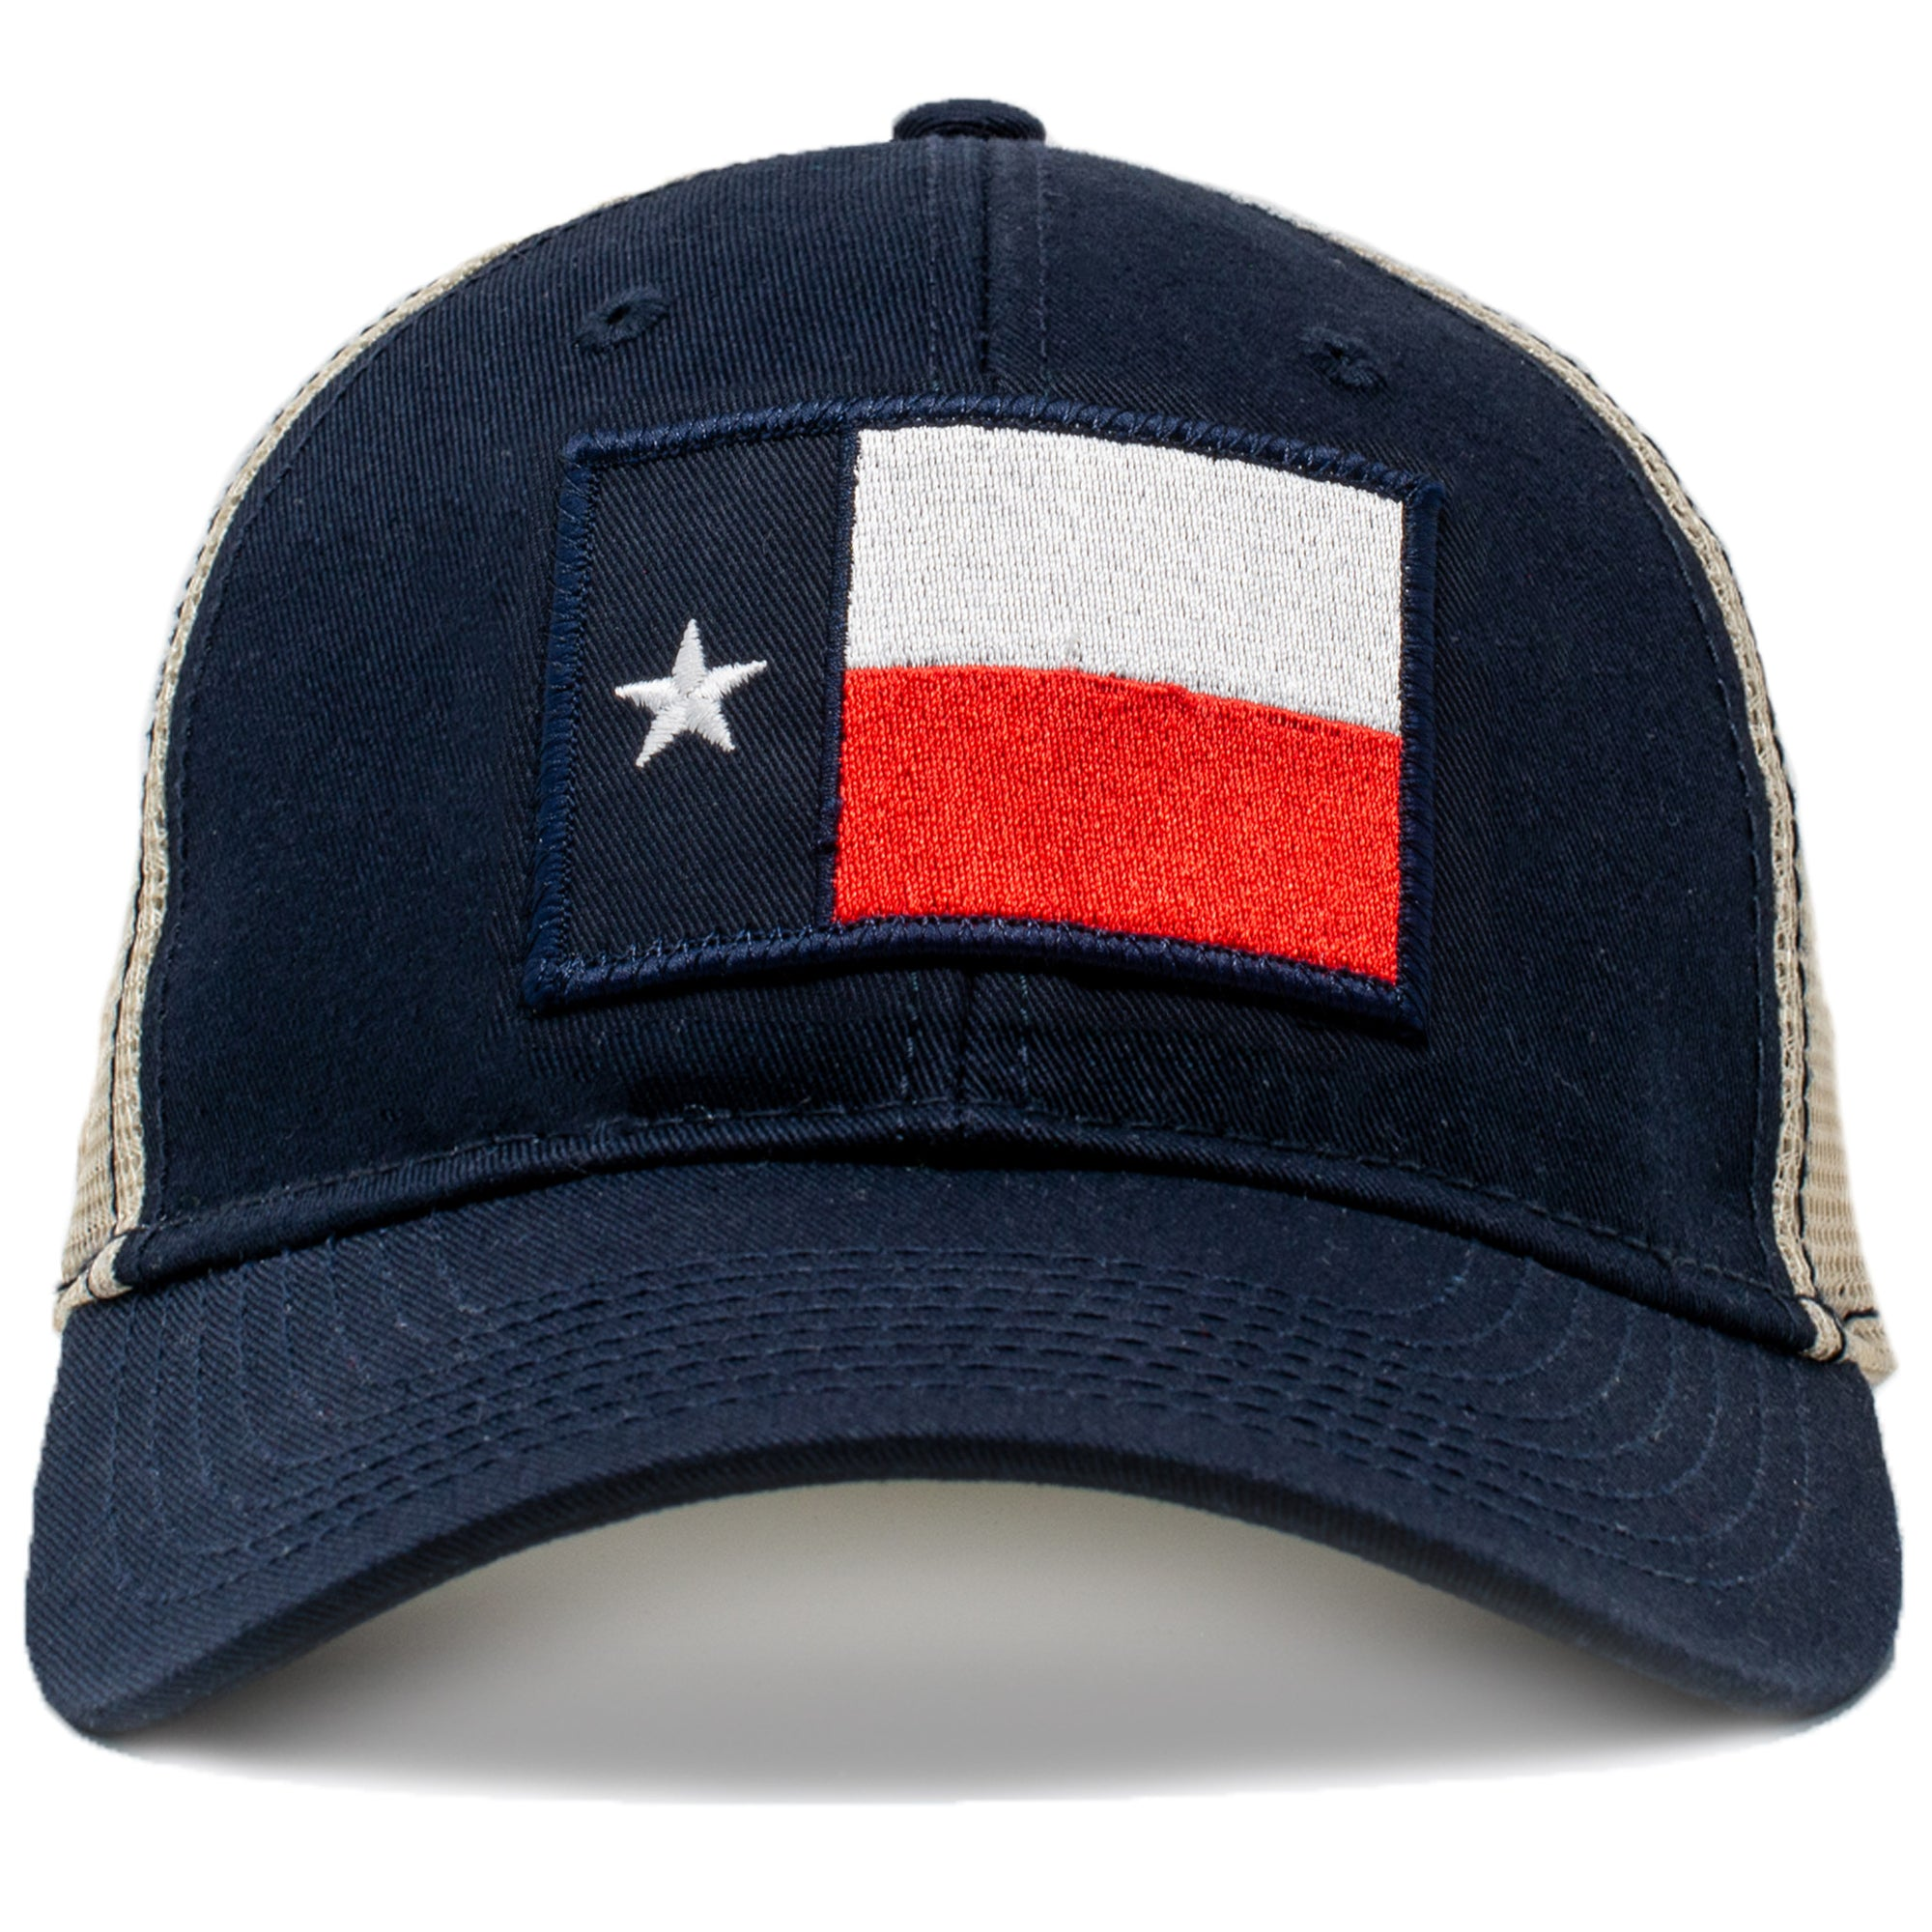 classic texas trucker hat with texas flag patch